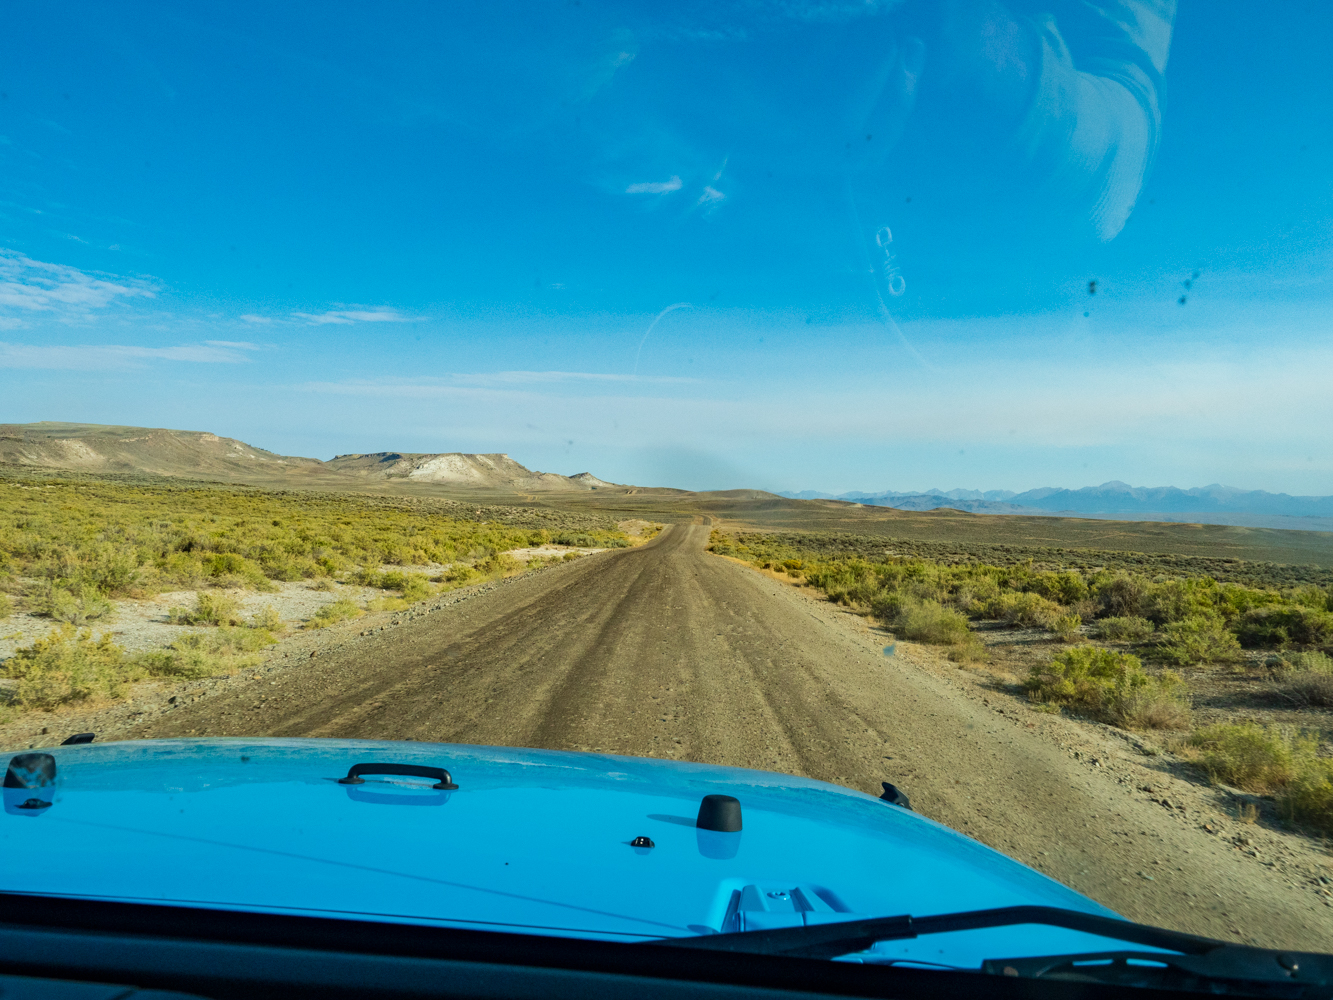 The last 40 miles are all dirt road. We got lucky and were able to rent a brand new Jeep Wrangler! The winds are the mountains in the distance.